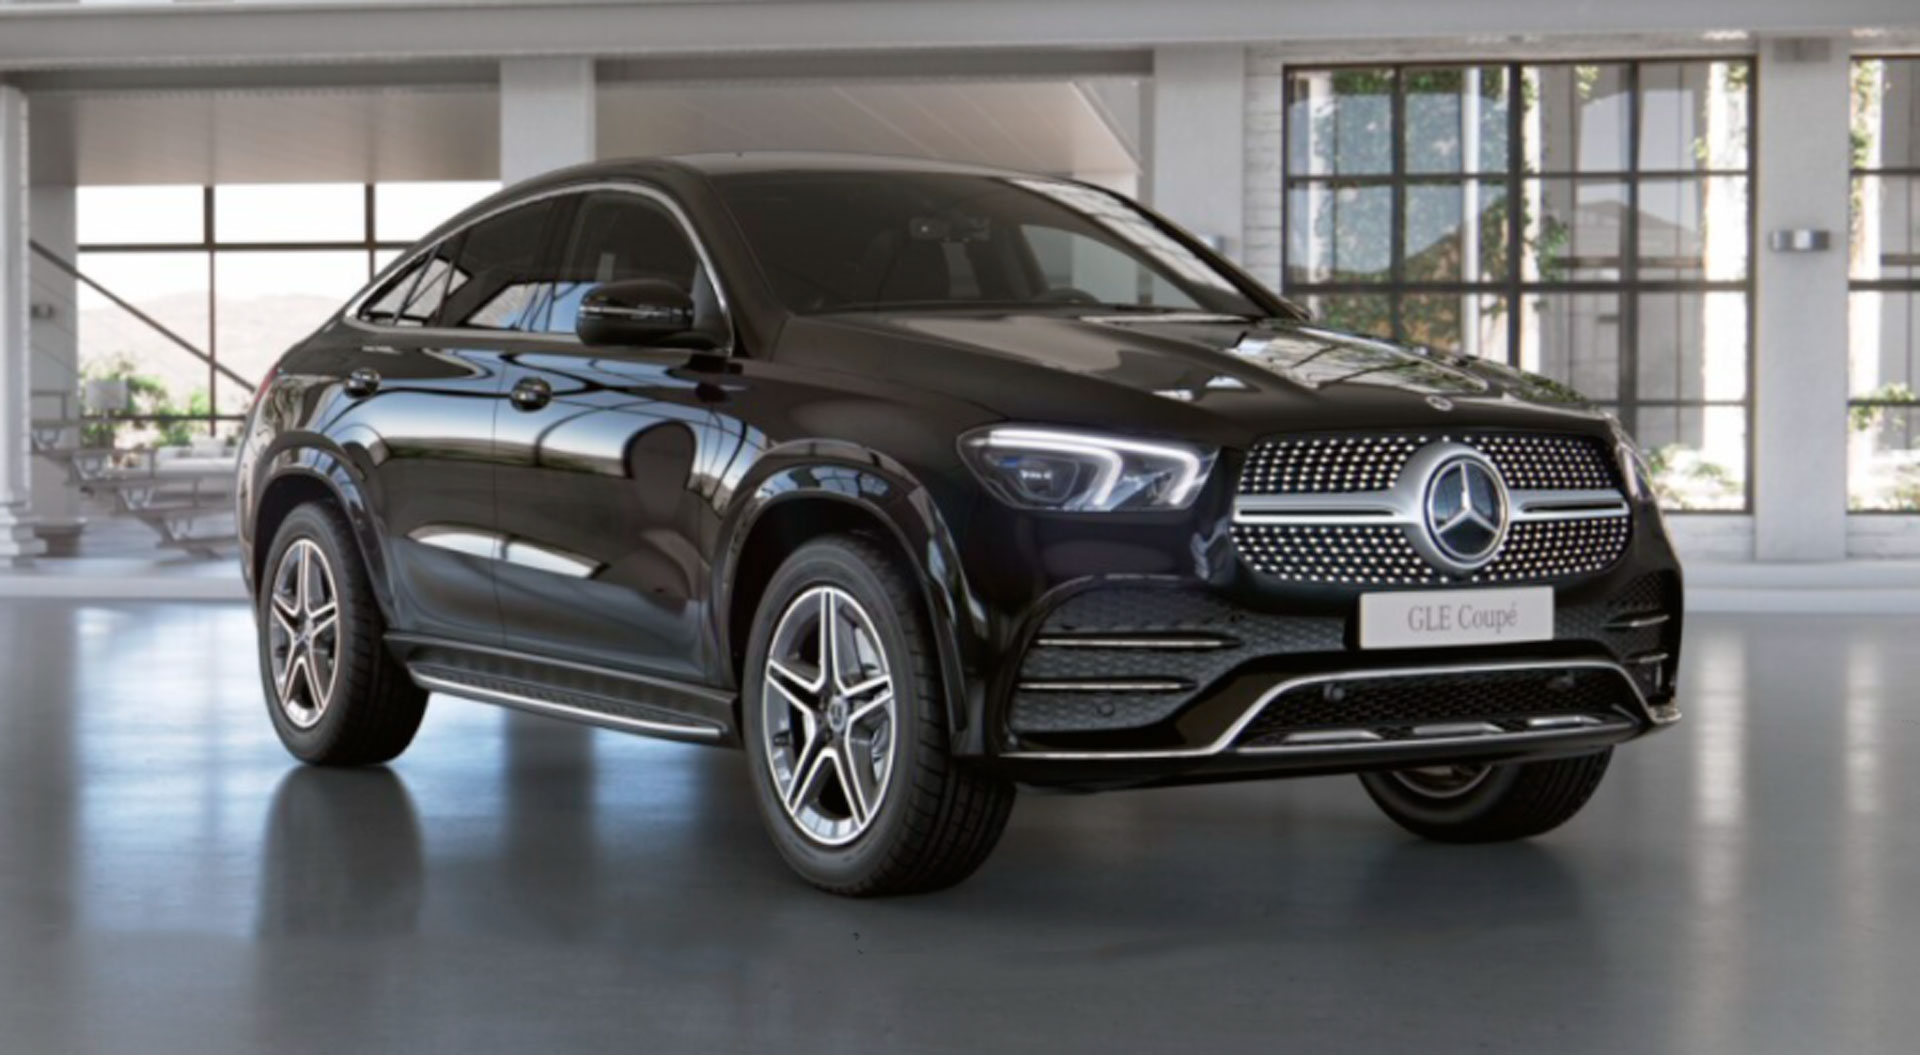 Mercedes-Benz GLE Coupe 0152607031